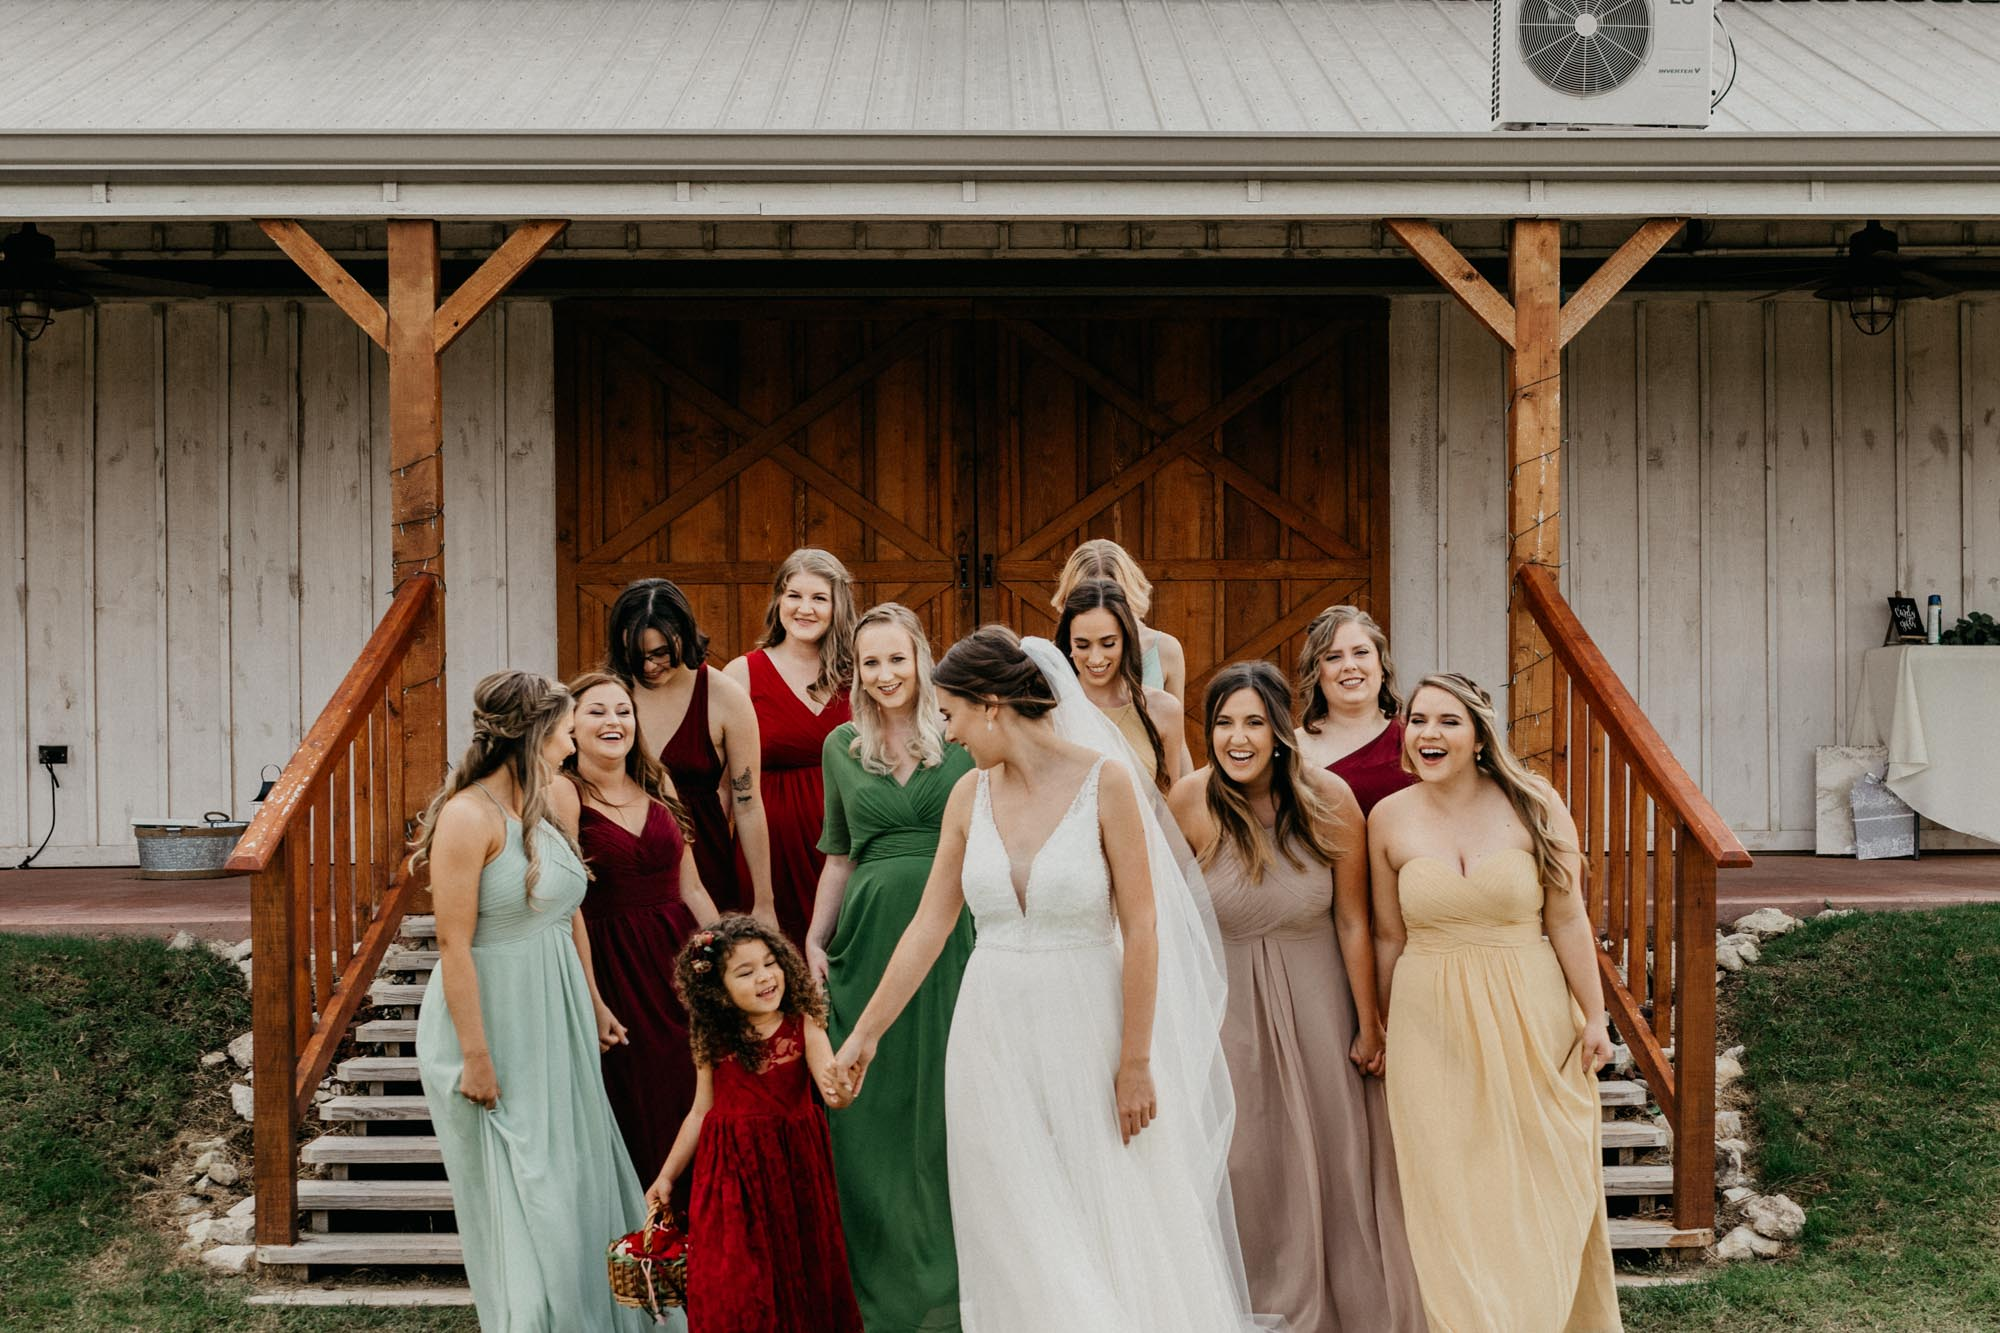 stunning bridal party walks down stairs